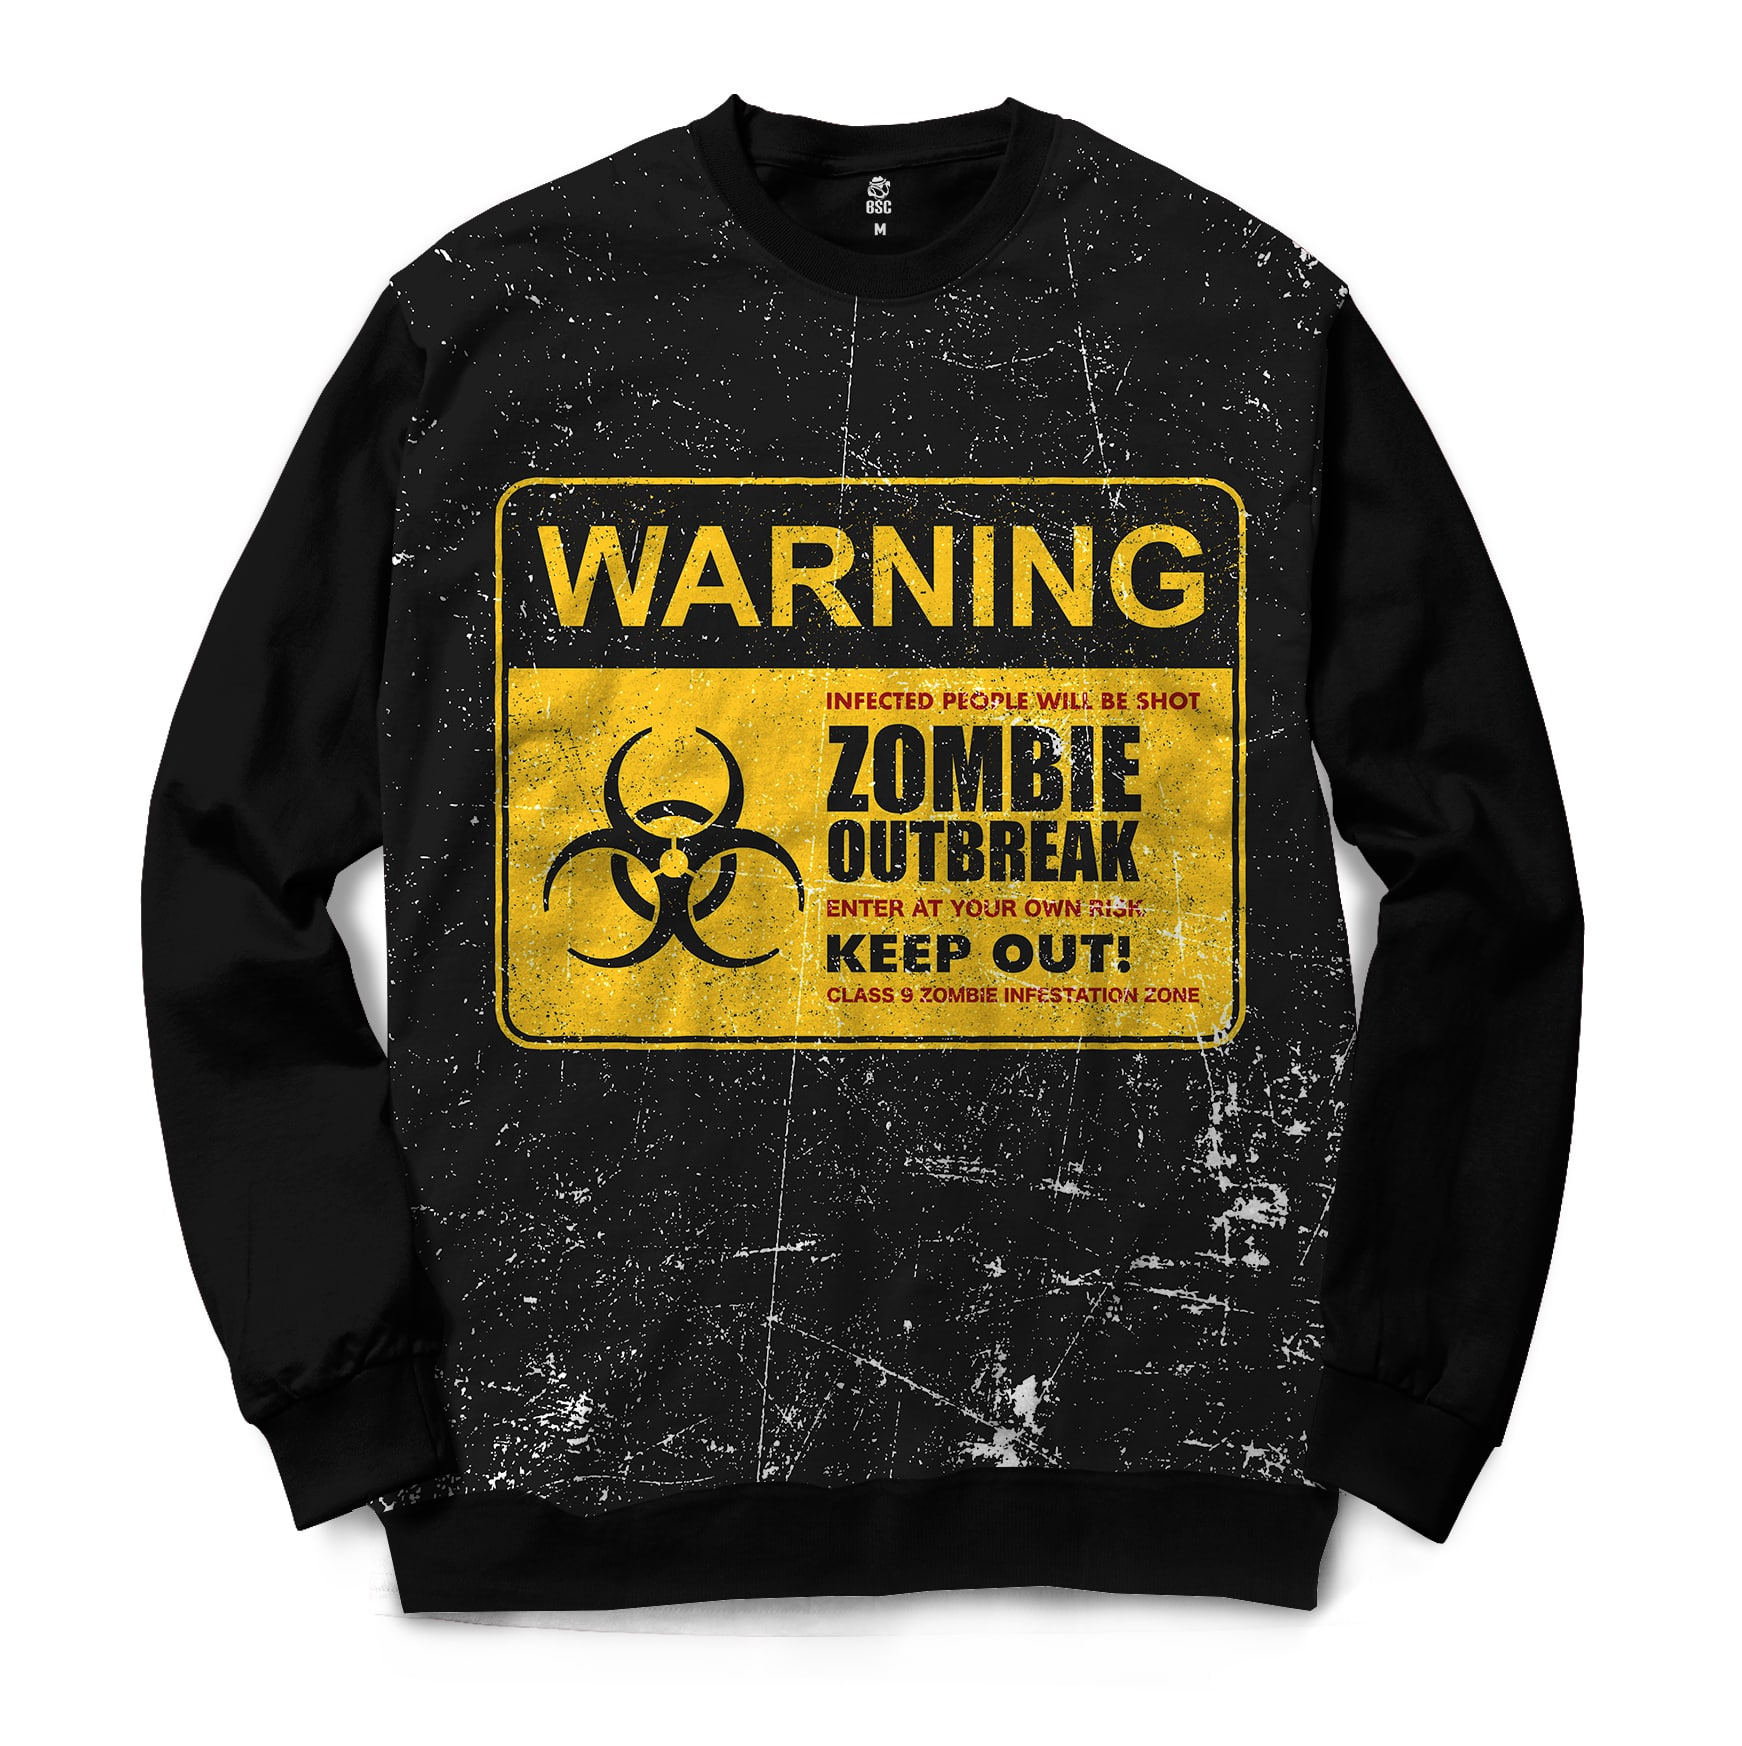 Moletom Gola Careca BSC Zombies Zona infectada 6 Full Print Preto